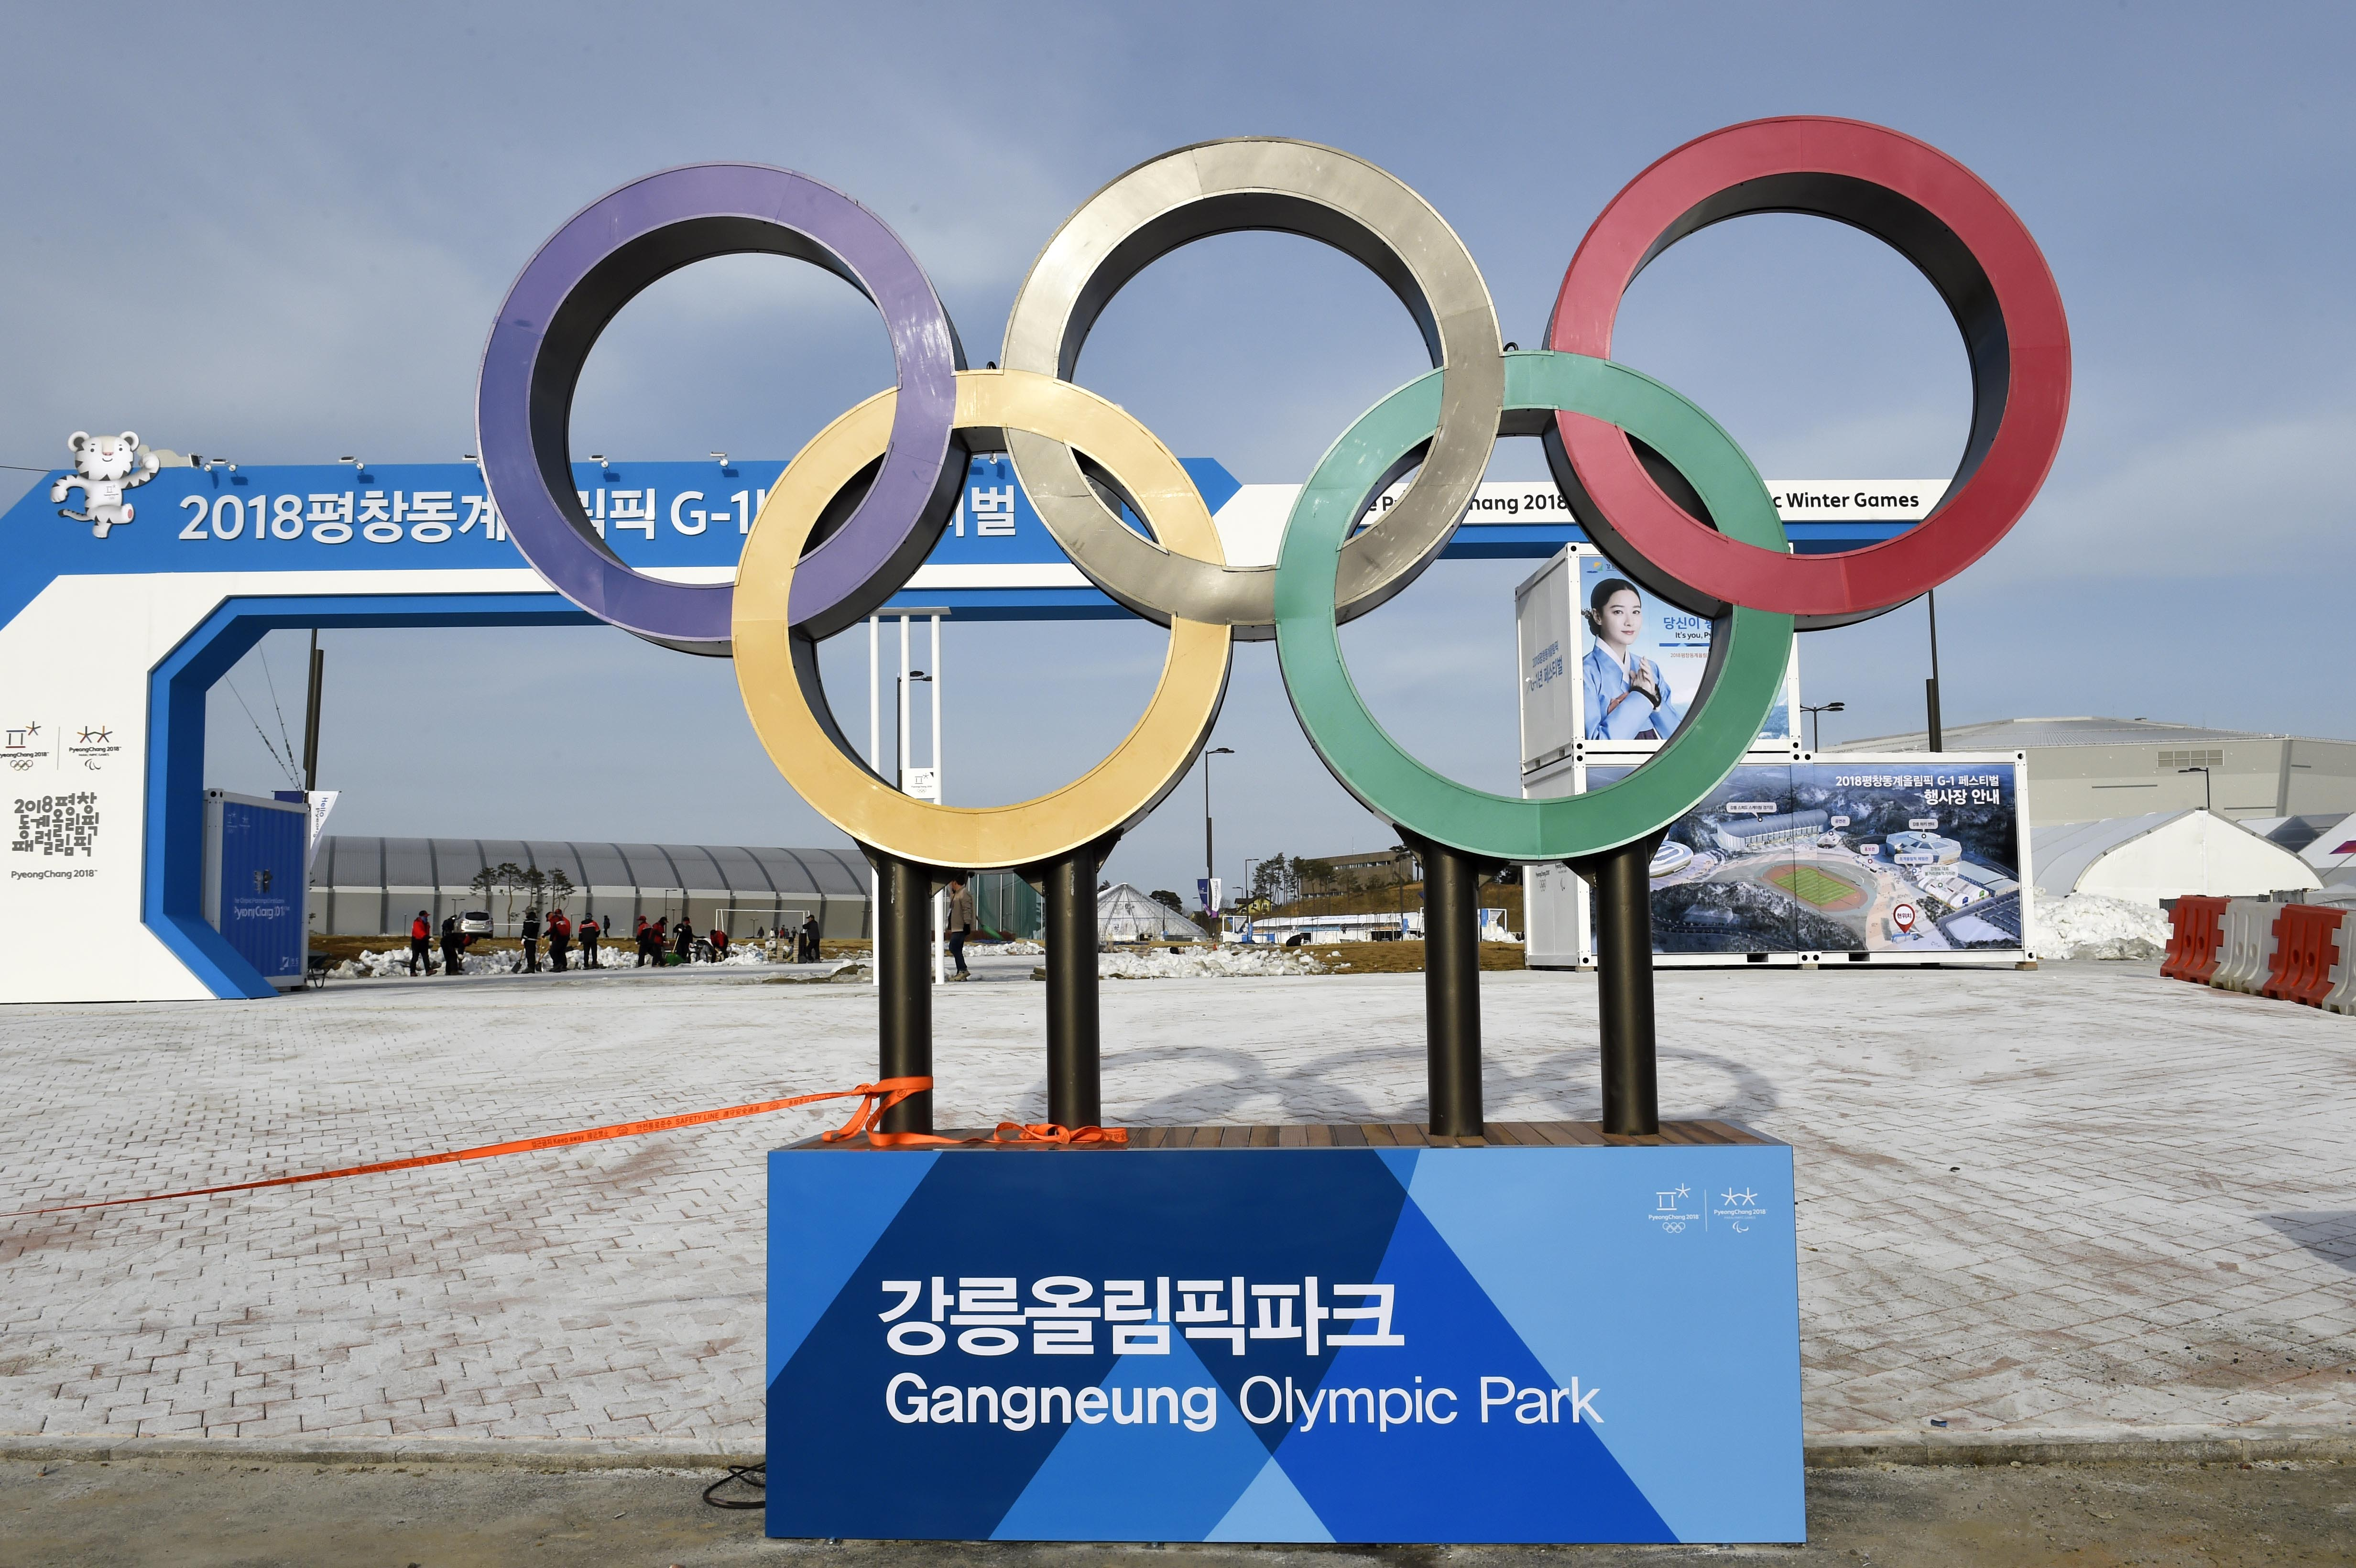 Gangneung Olympic Park